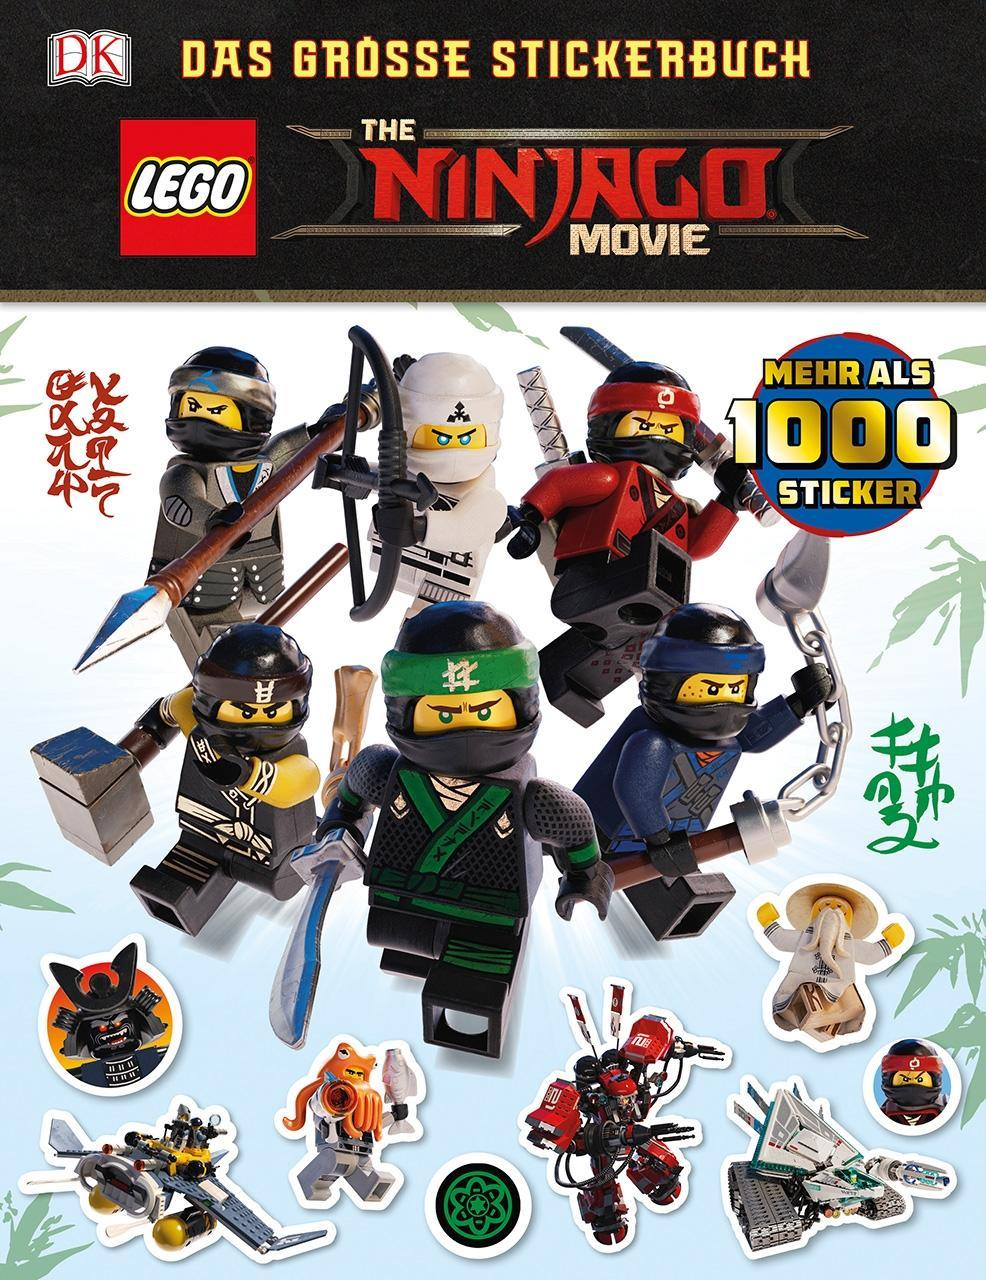 THE LEGO NINJAGO MOVIE Das groe Stickerbuch (March Julia)(Paperback)(v němčině)